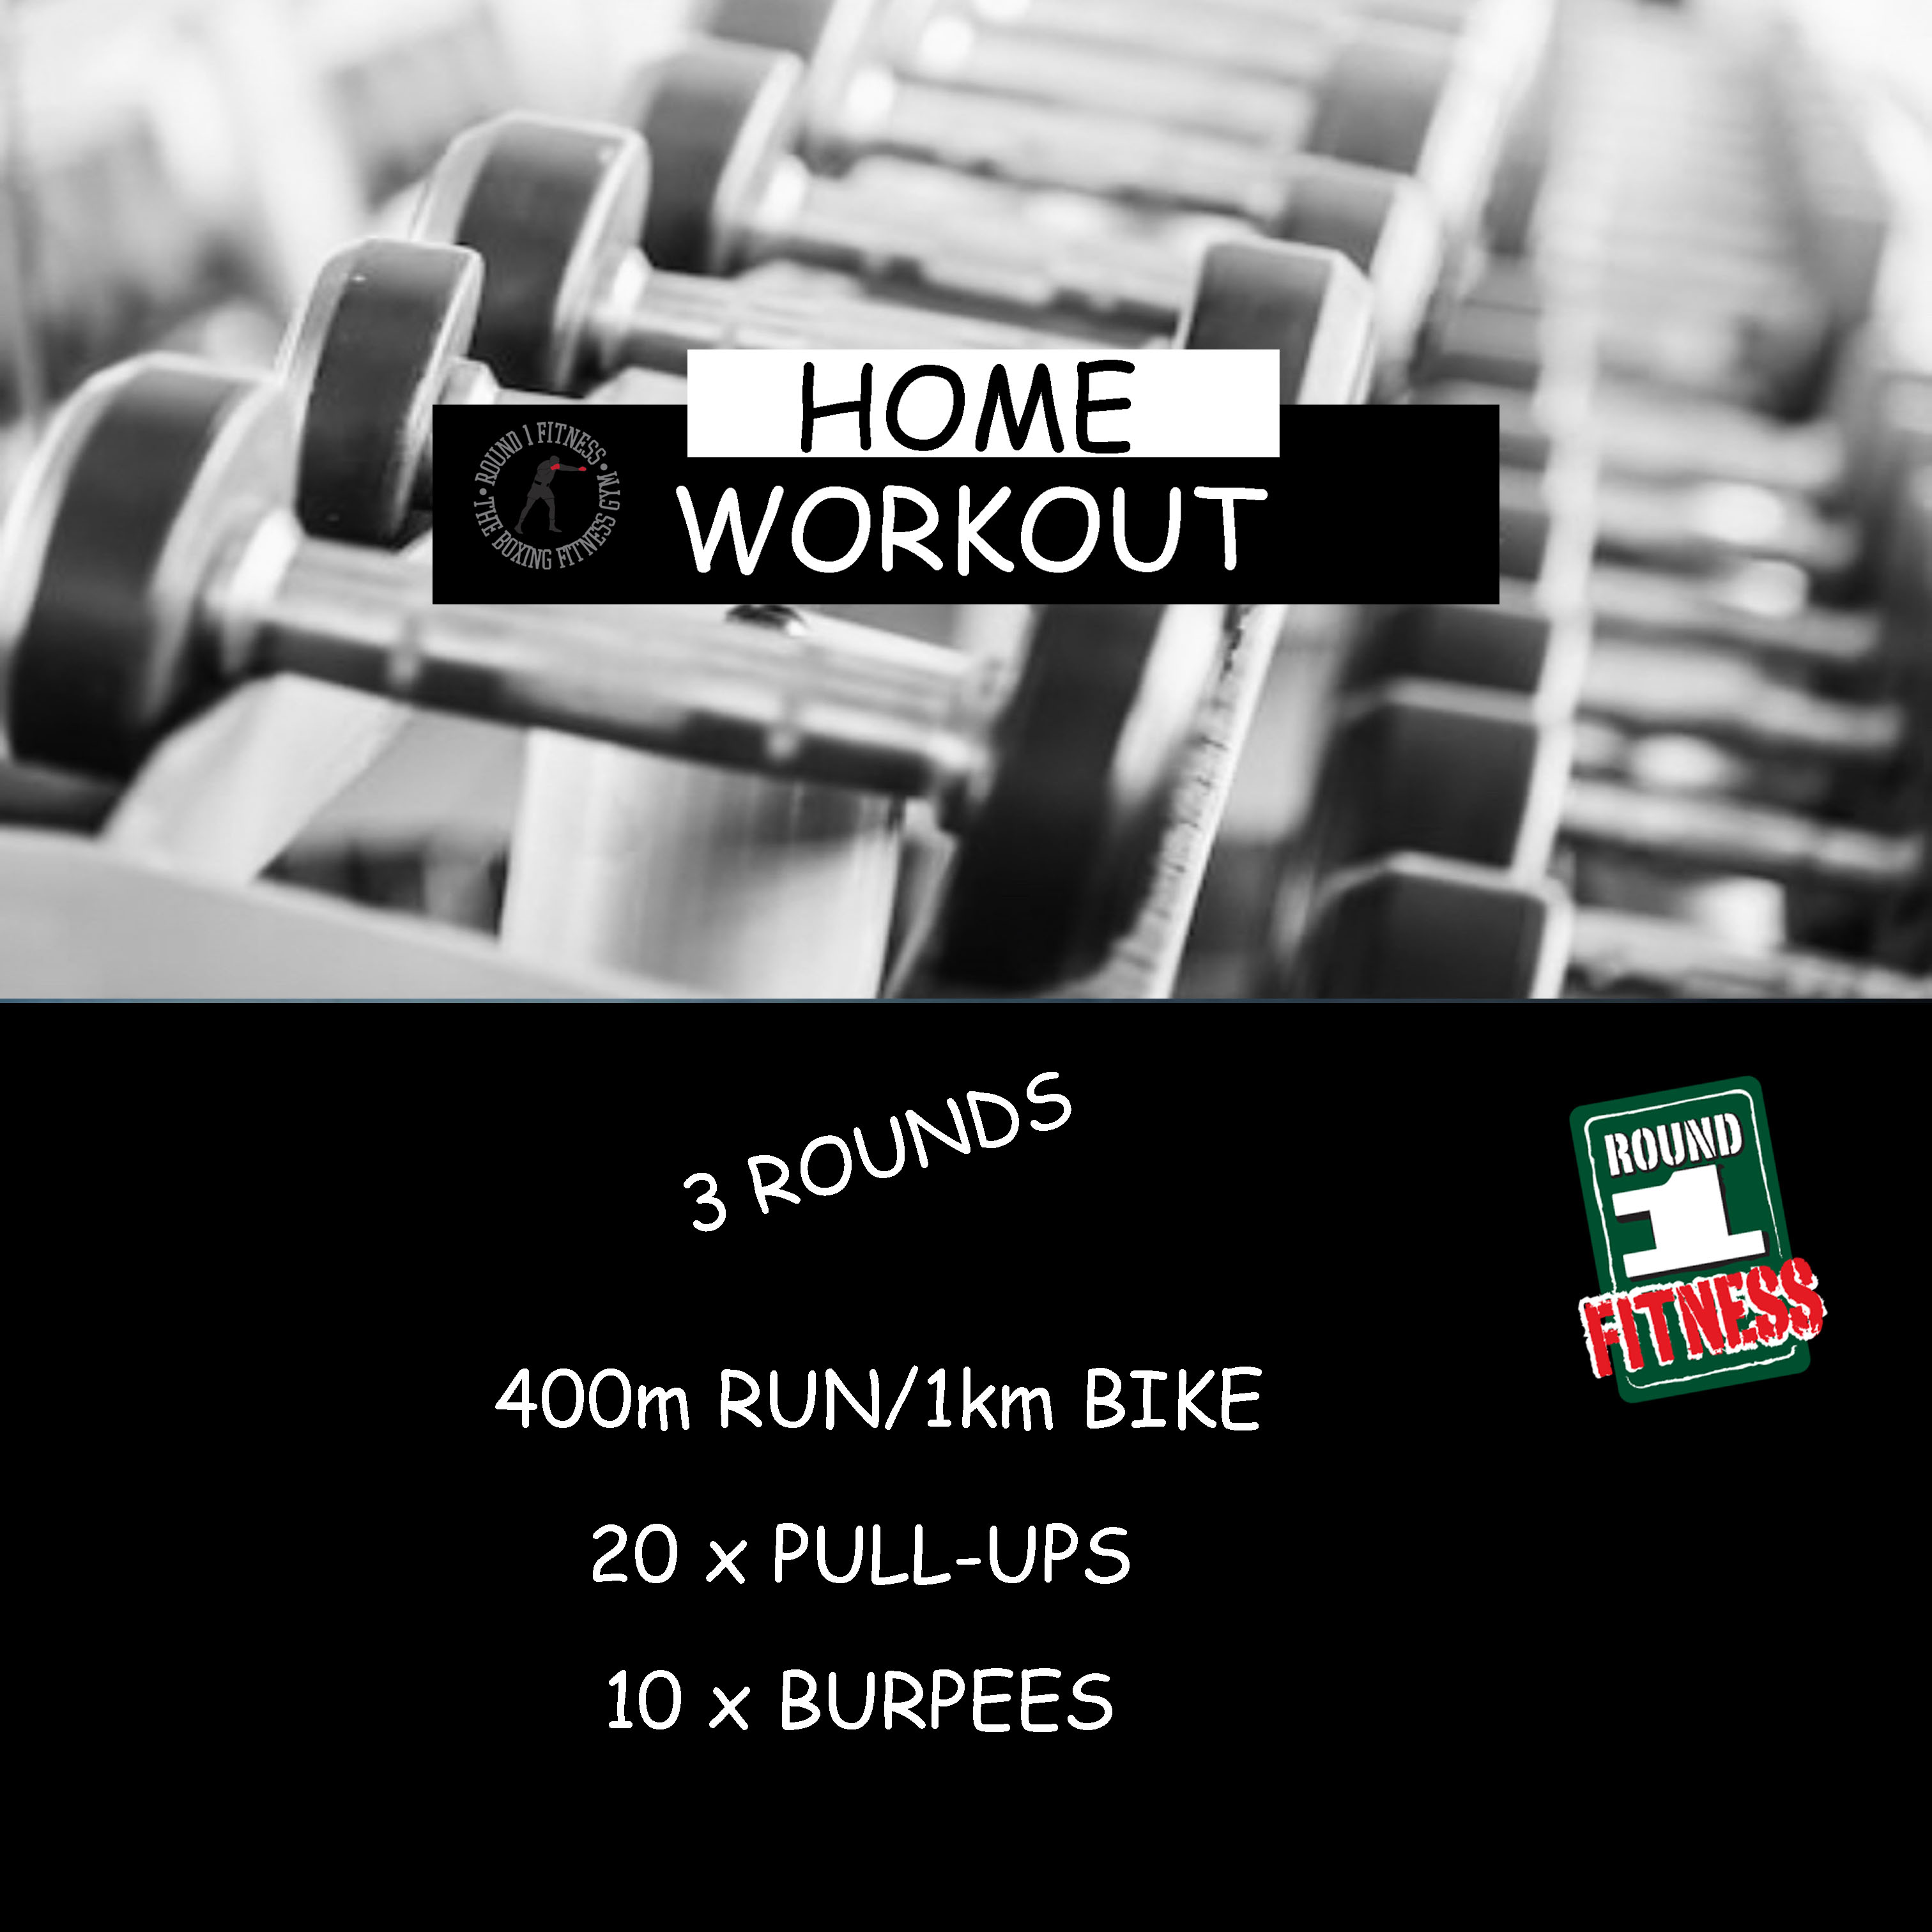 Home Workout:  Thursday, March 26th